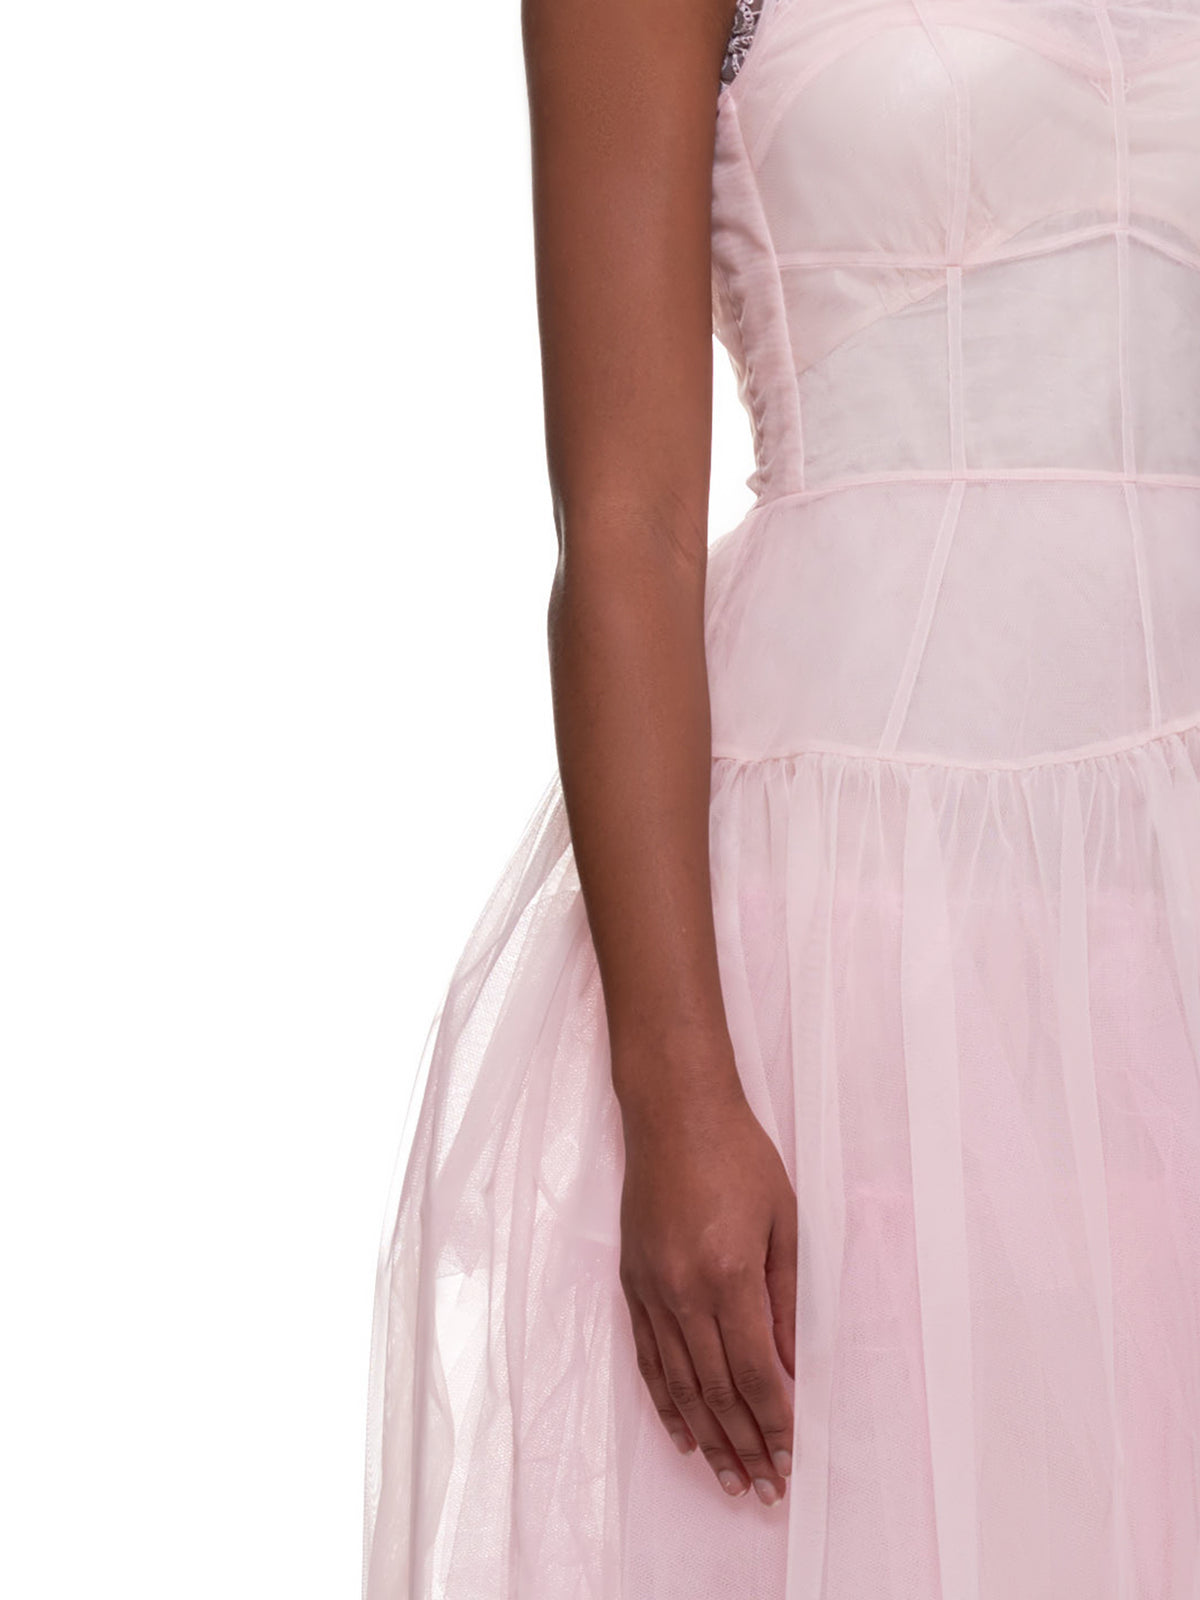 Simone Rocha Dress | H.Lorenzo - detail 2